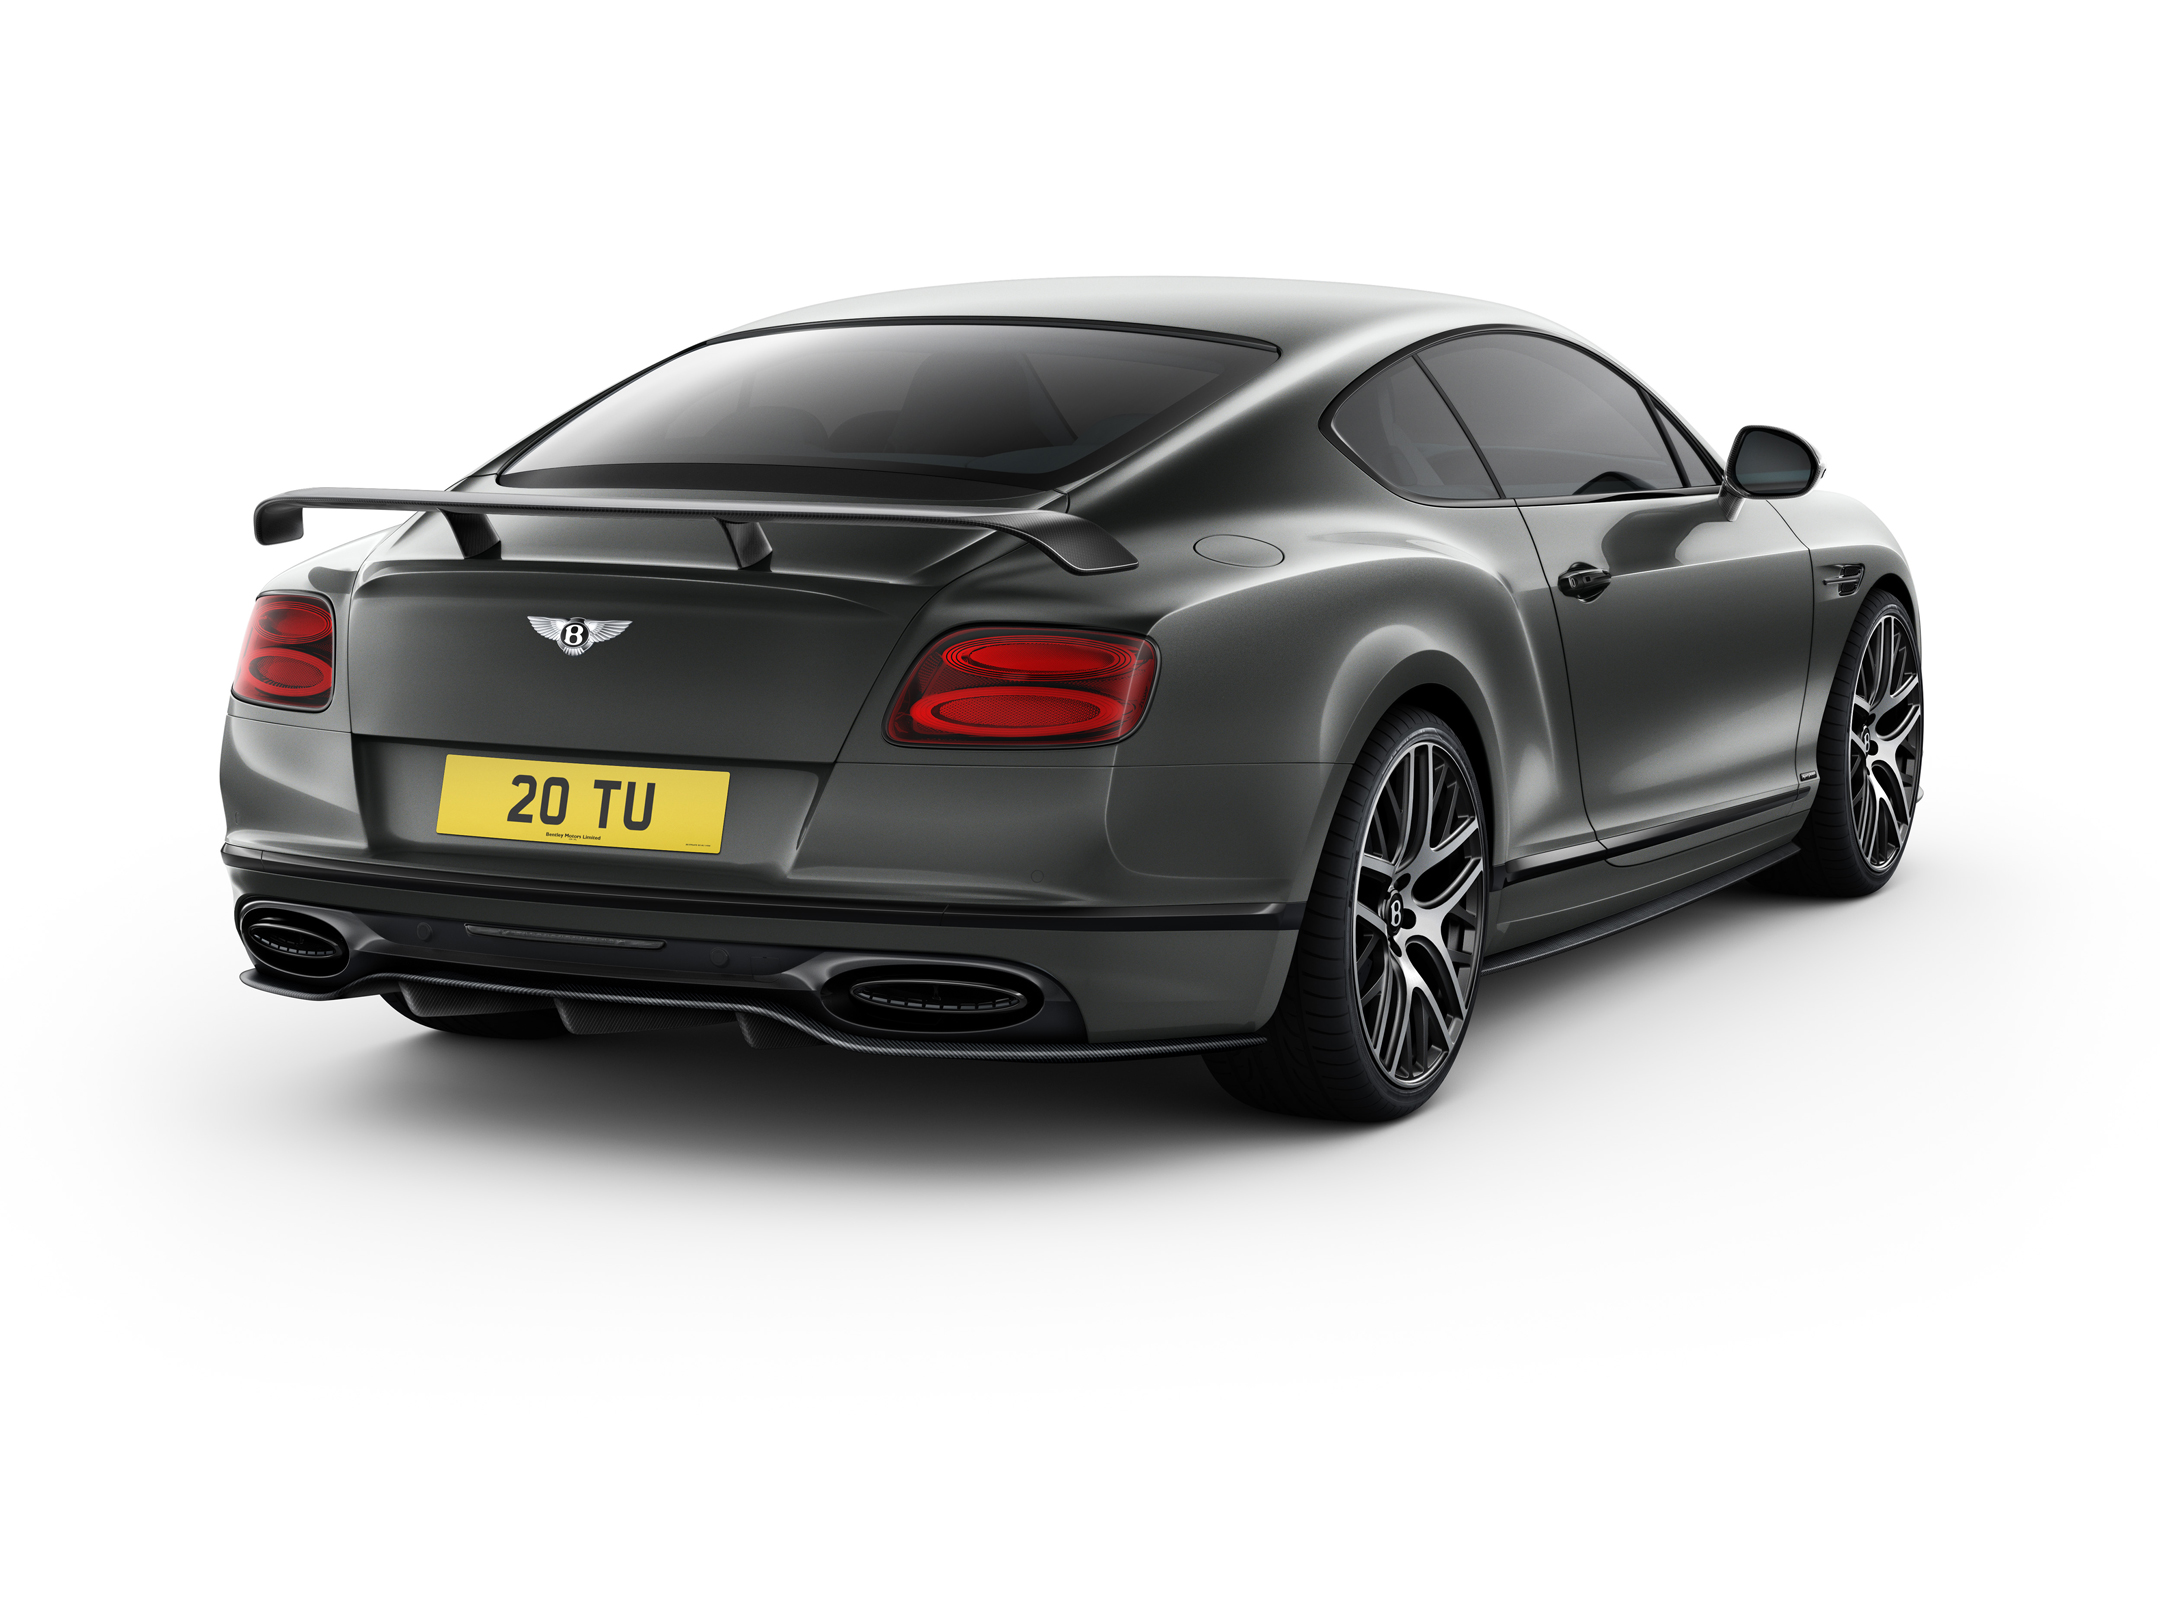 Continental Supersports - 2017 - arrière / rear